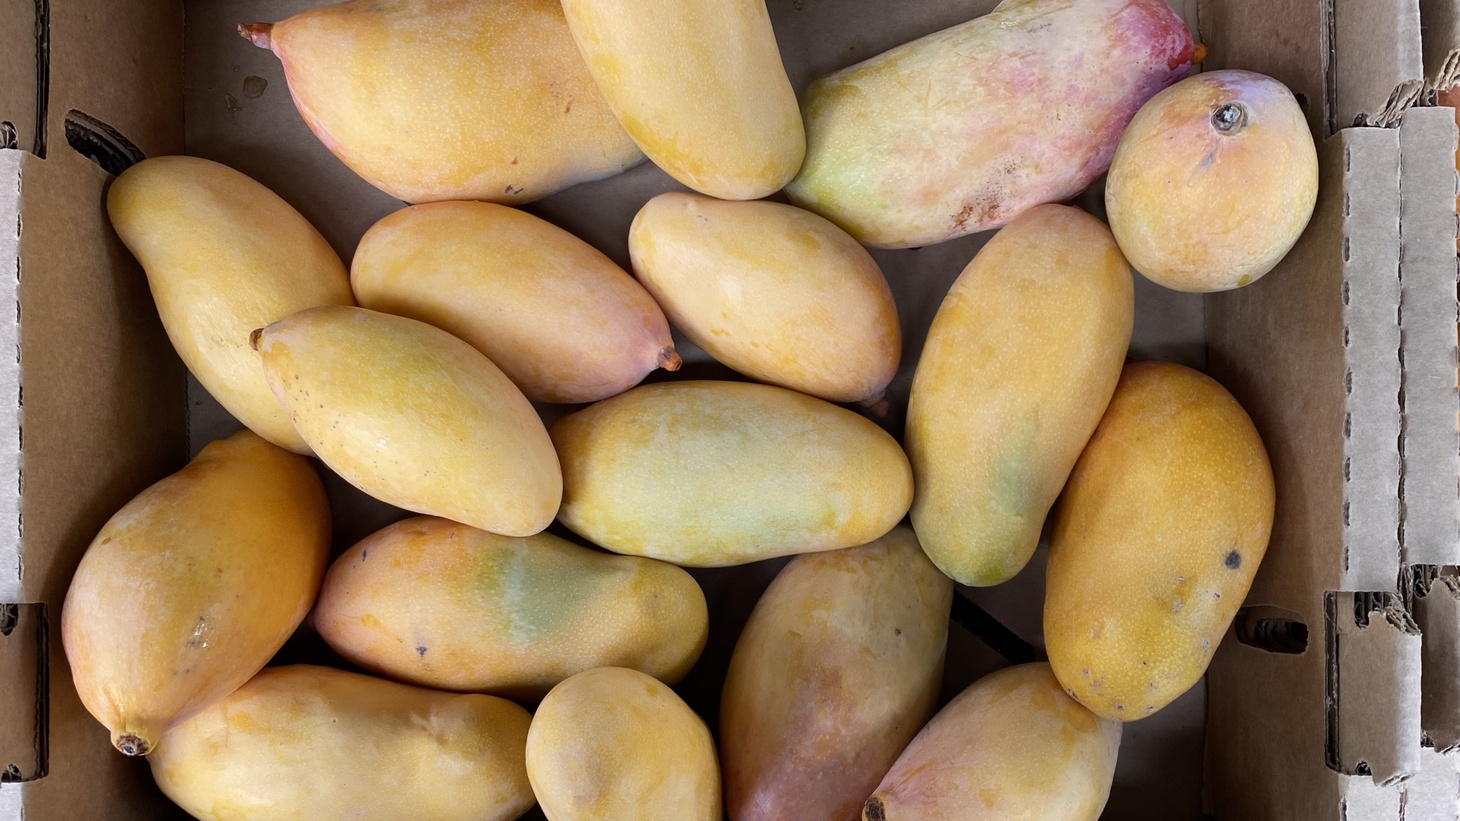 Mangoes from Wong Farms are grown in the desert, where they thrive in dry heat and sun.